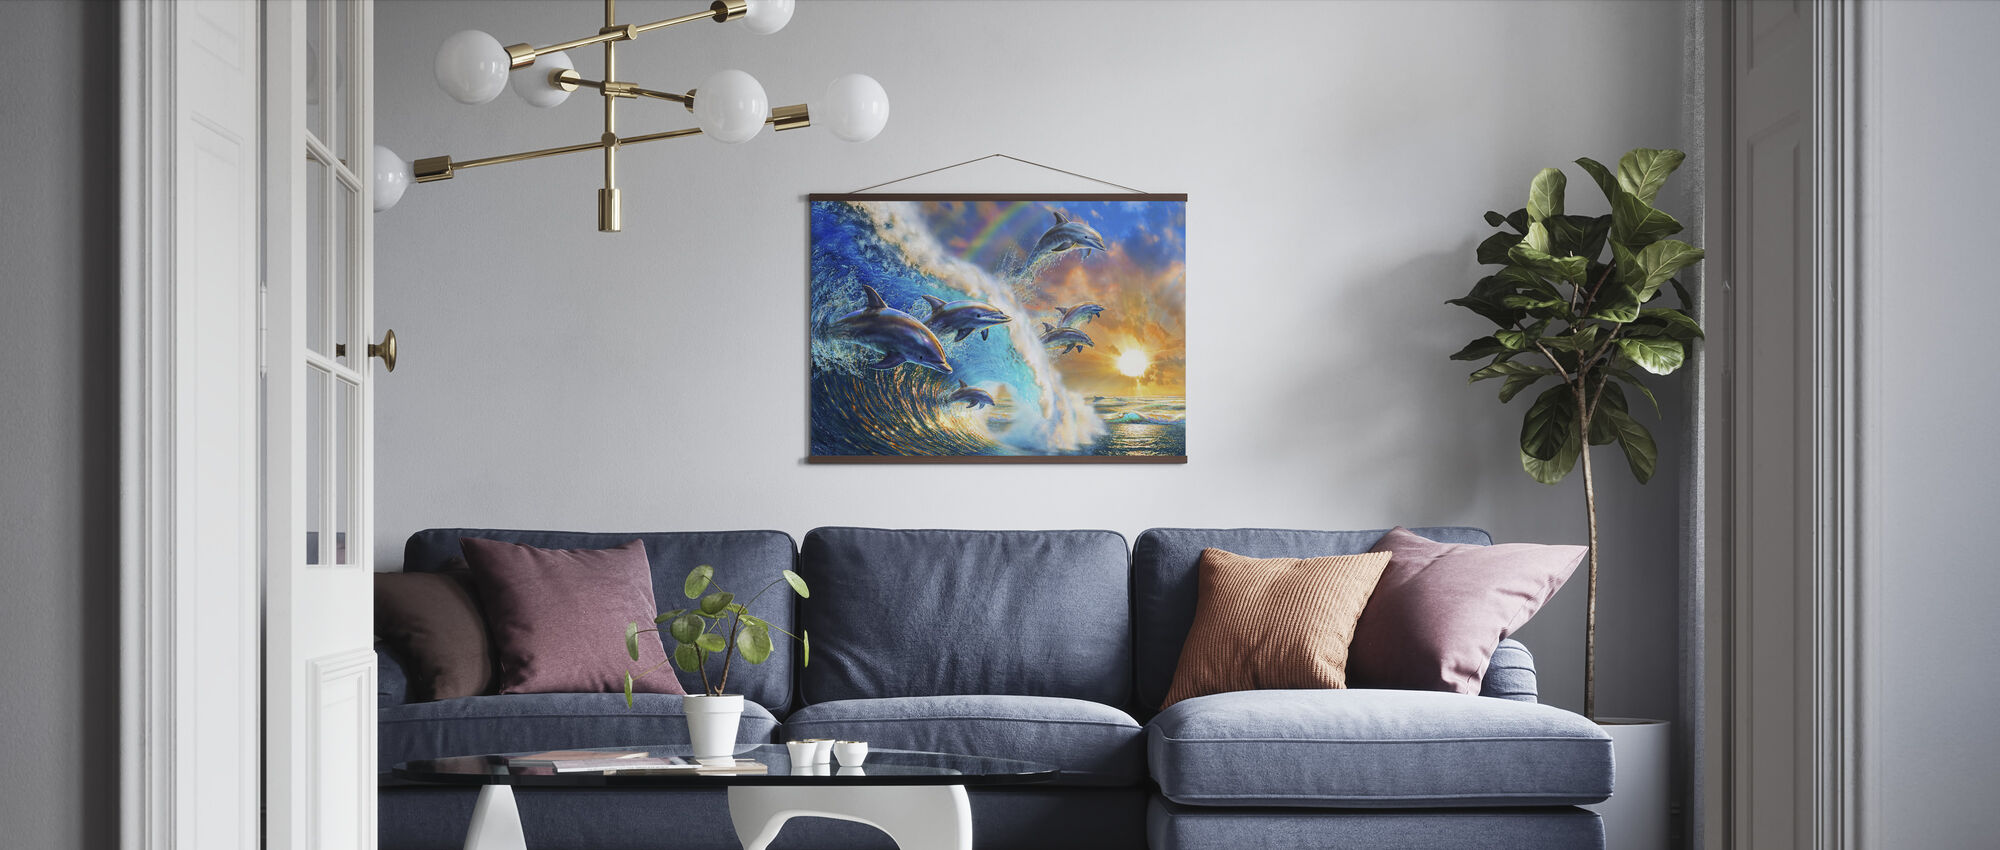 Dolphin Wave - Poster - Living Room